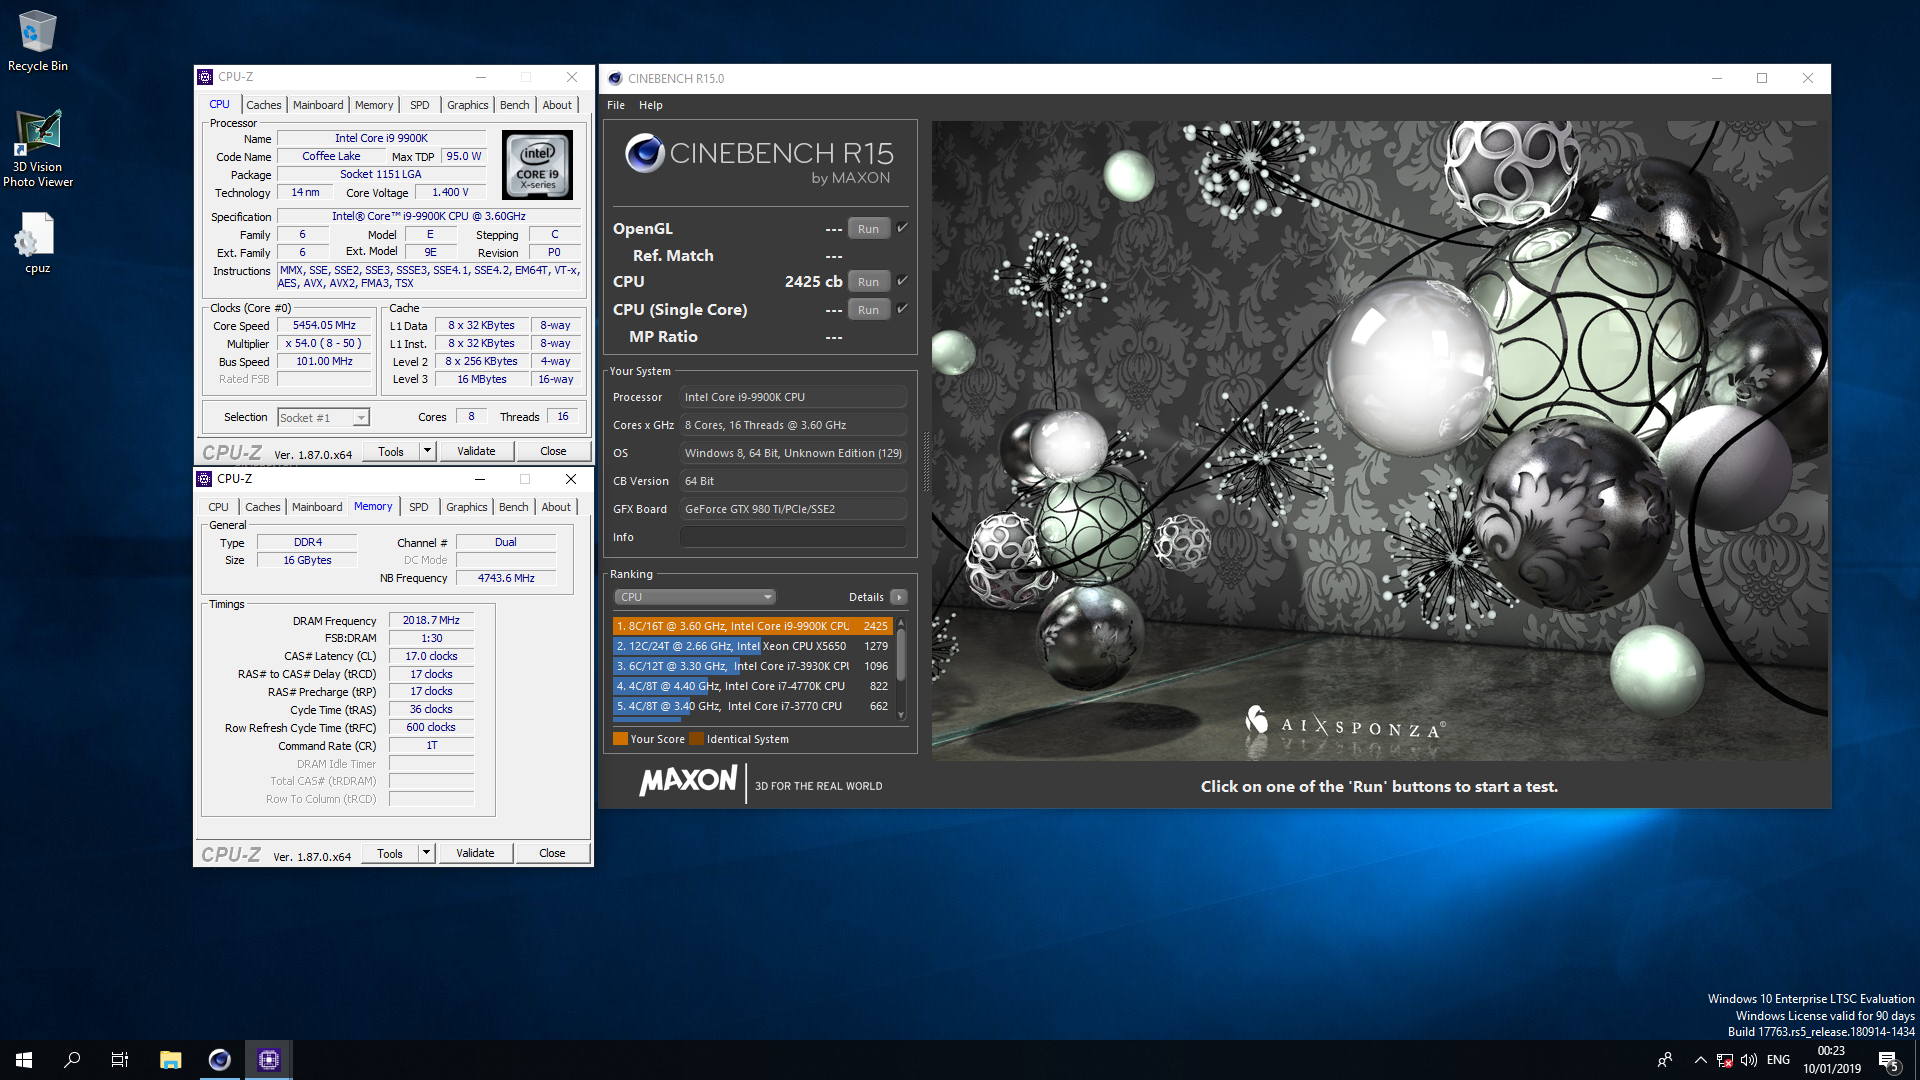 Ratiofarming`s Cinebench - R15 score: 2425 cb with a Core i9